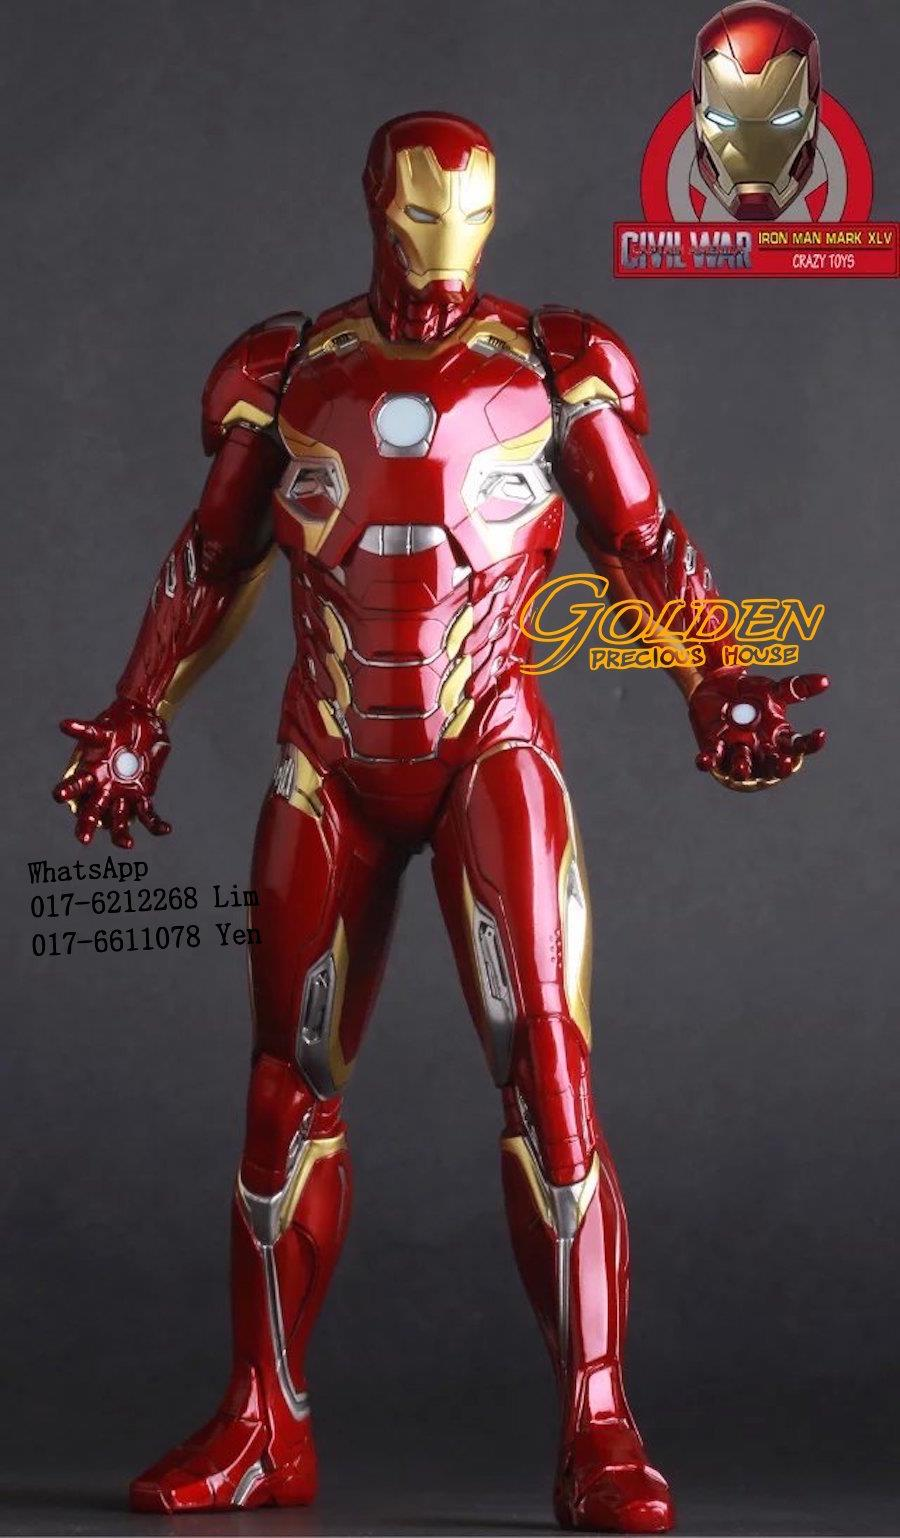 Marvel Universe Iron Man Mark Mk45 Action Figures Crazy Toys 30cm